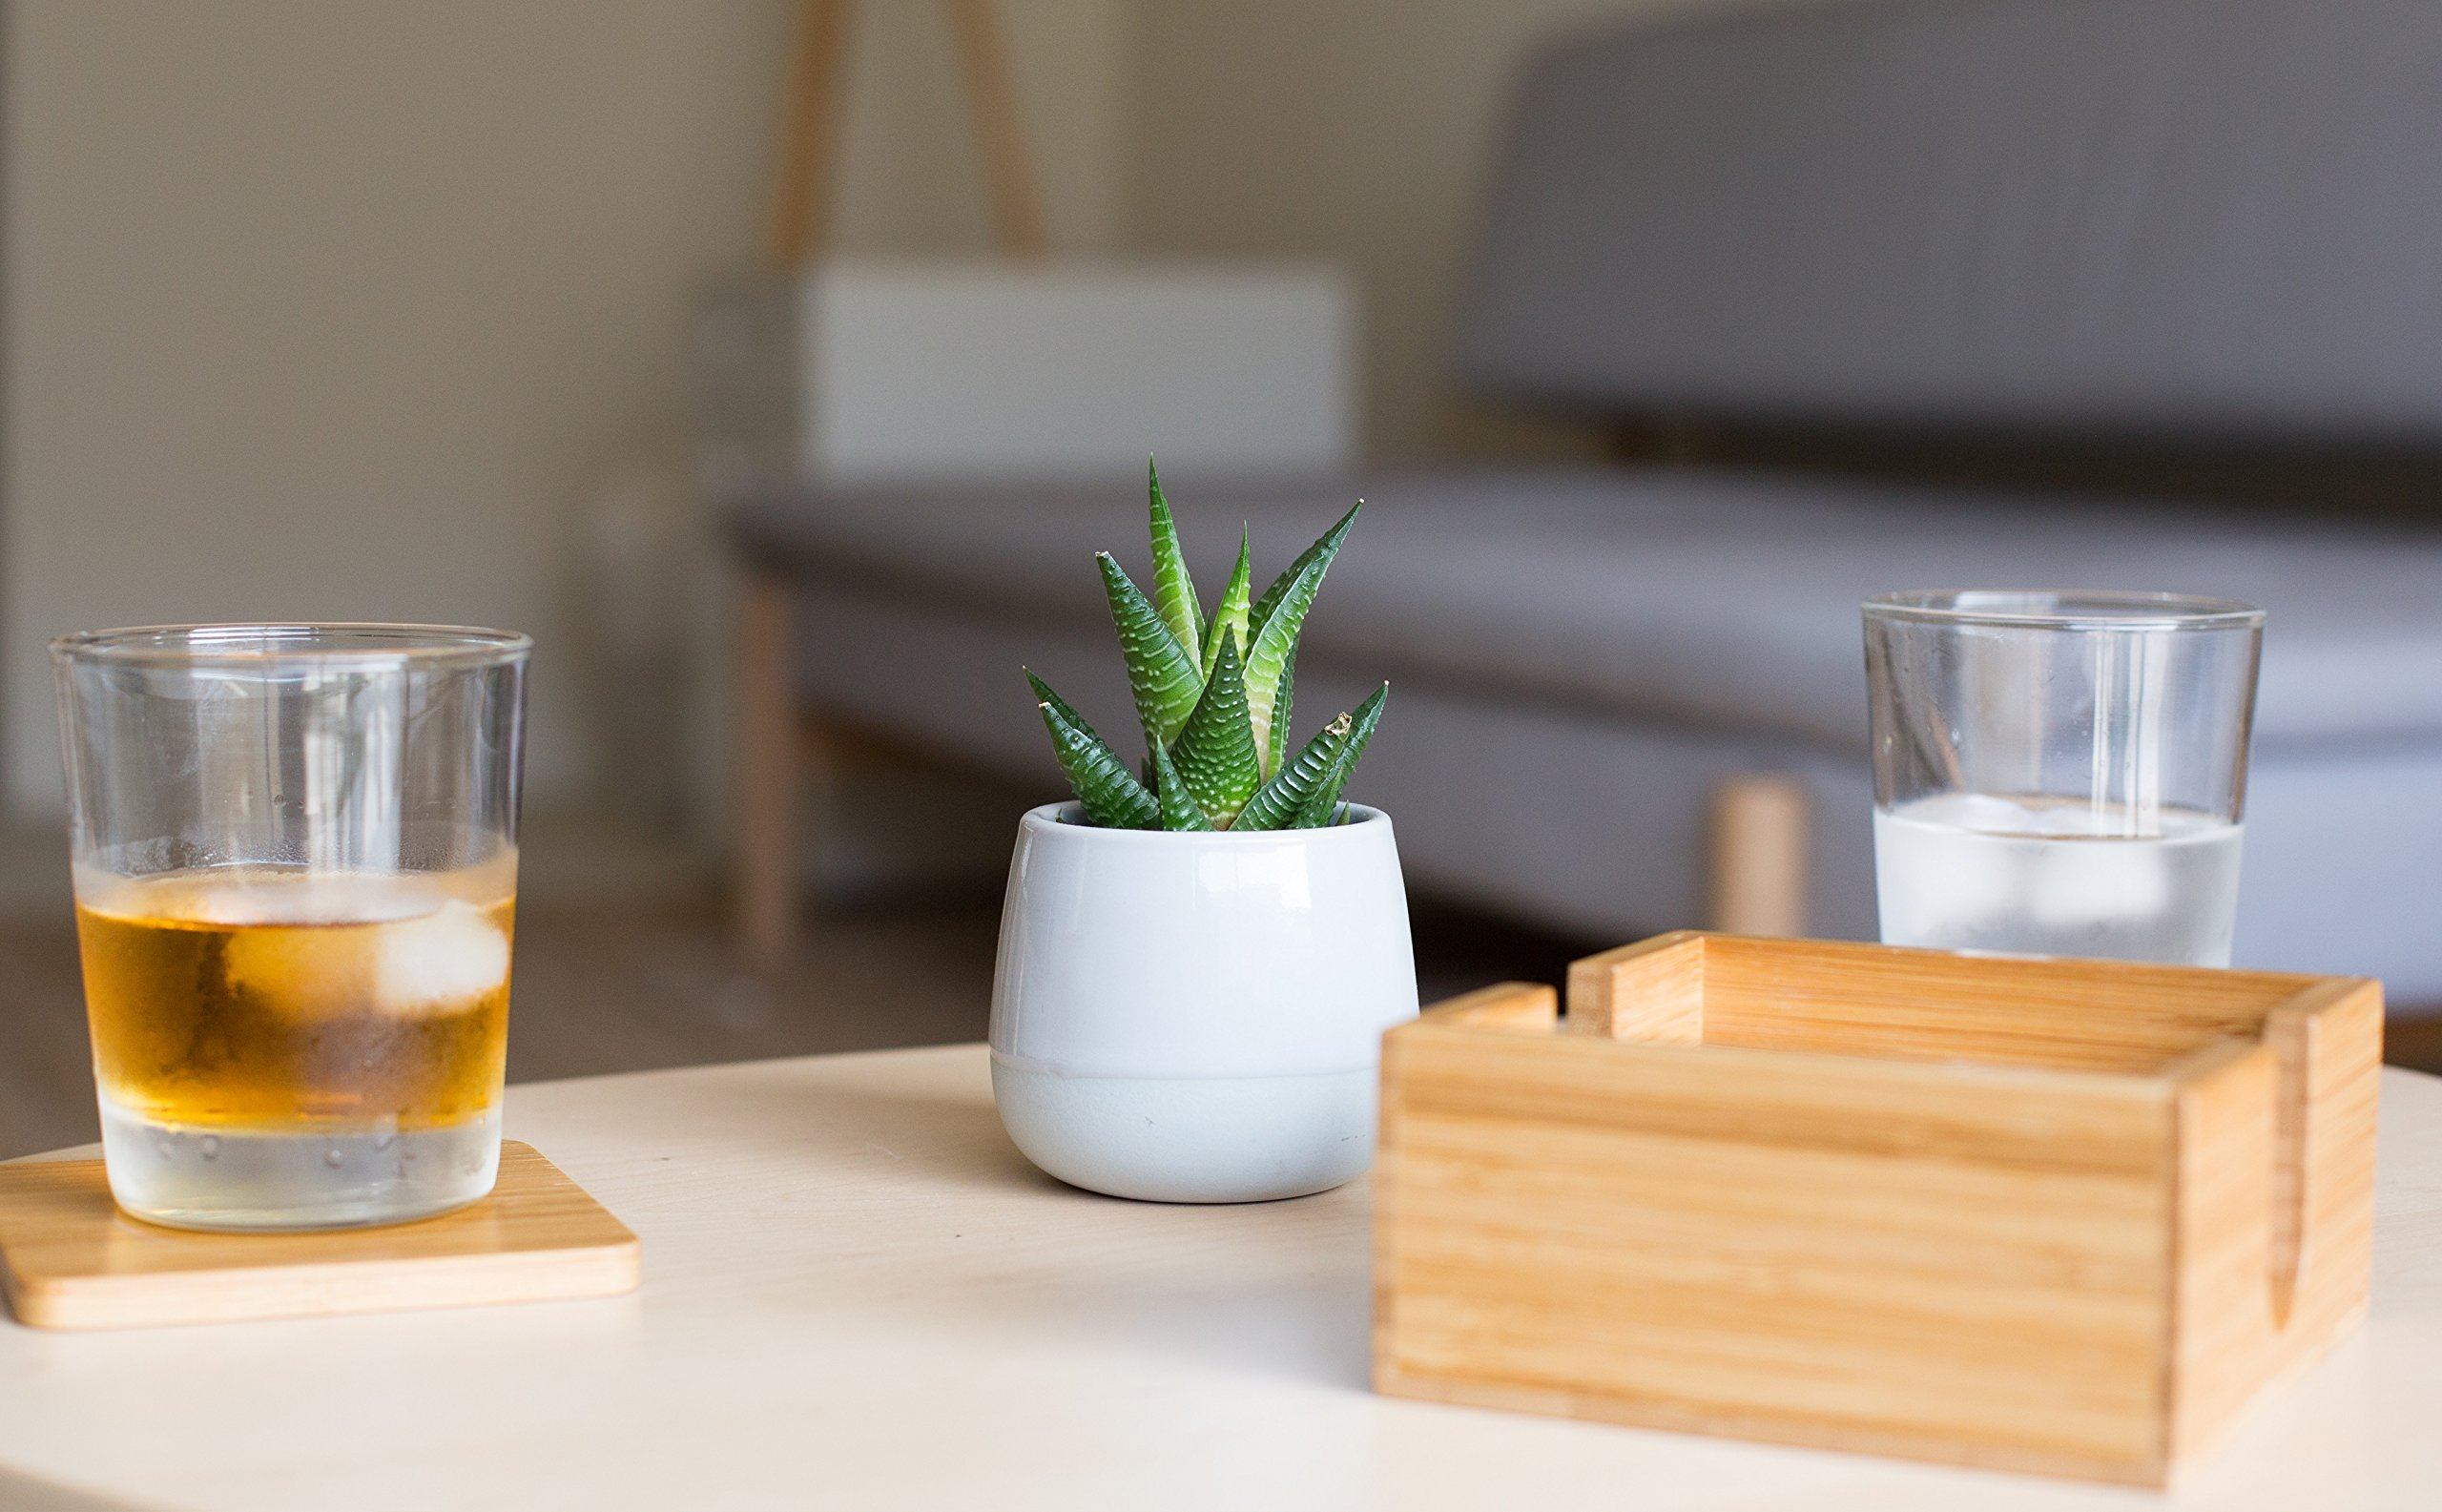 Bamboo Coasters 6 Pack with Bamboo Holder Eco-Friendly 100% Natural Wood Coaster - Stylish Furniture Protection by Kuratere